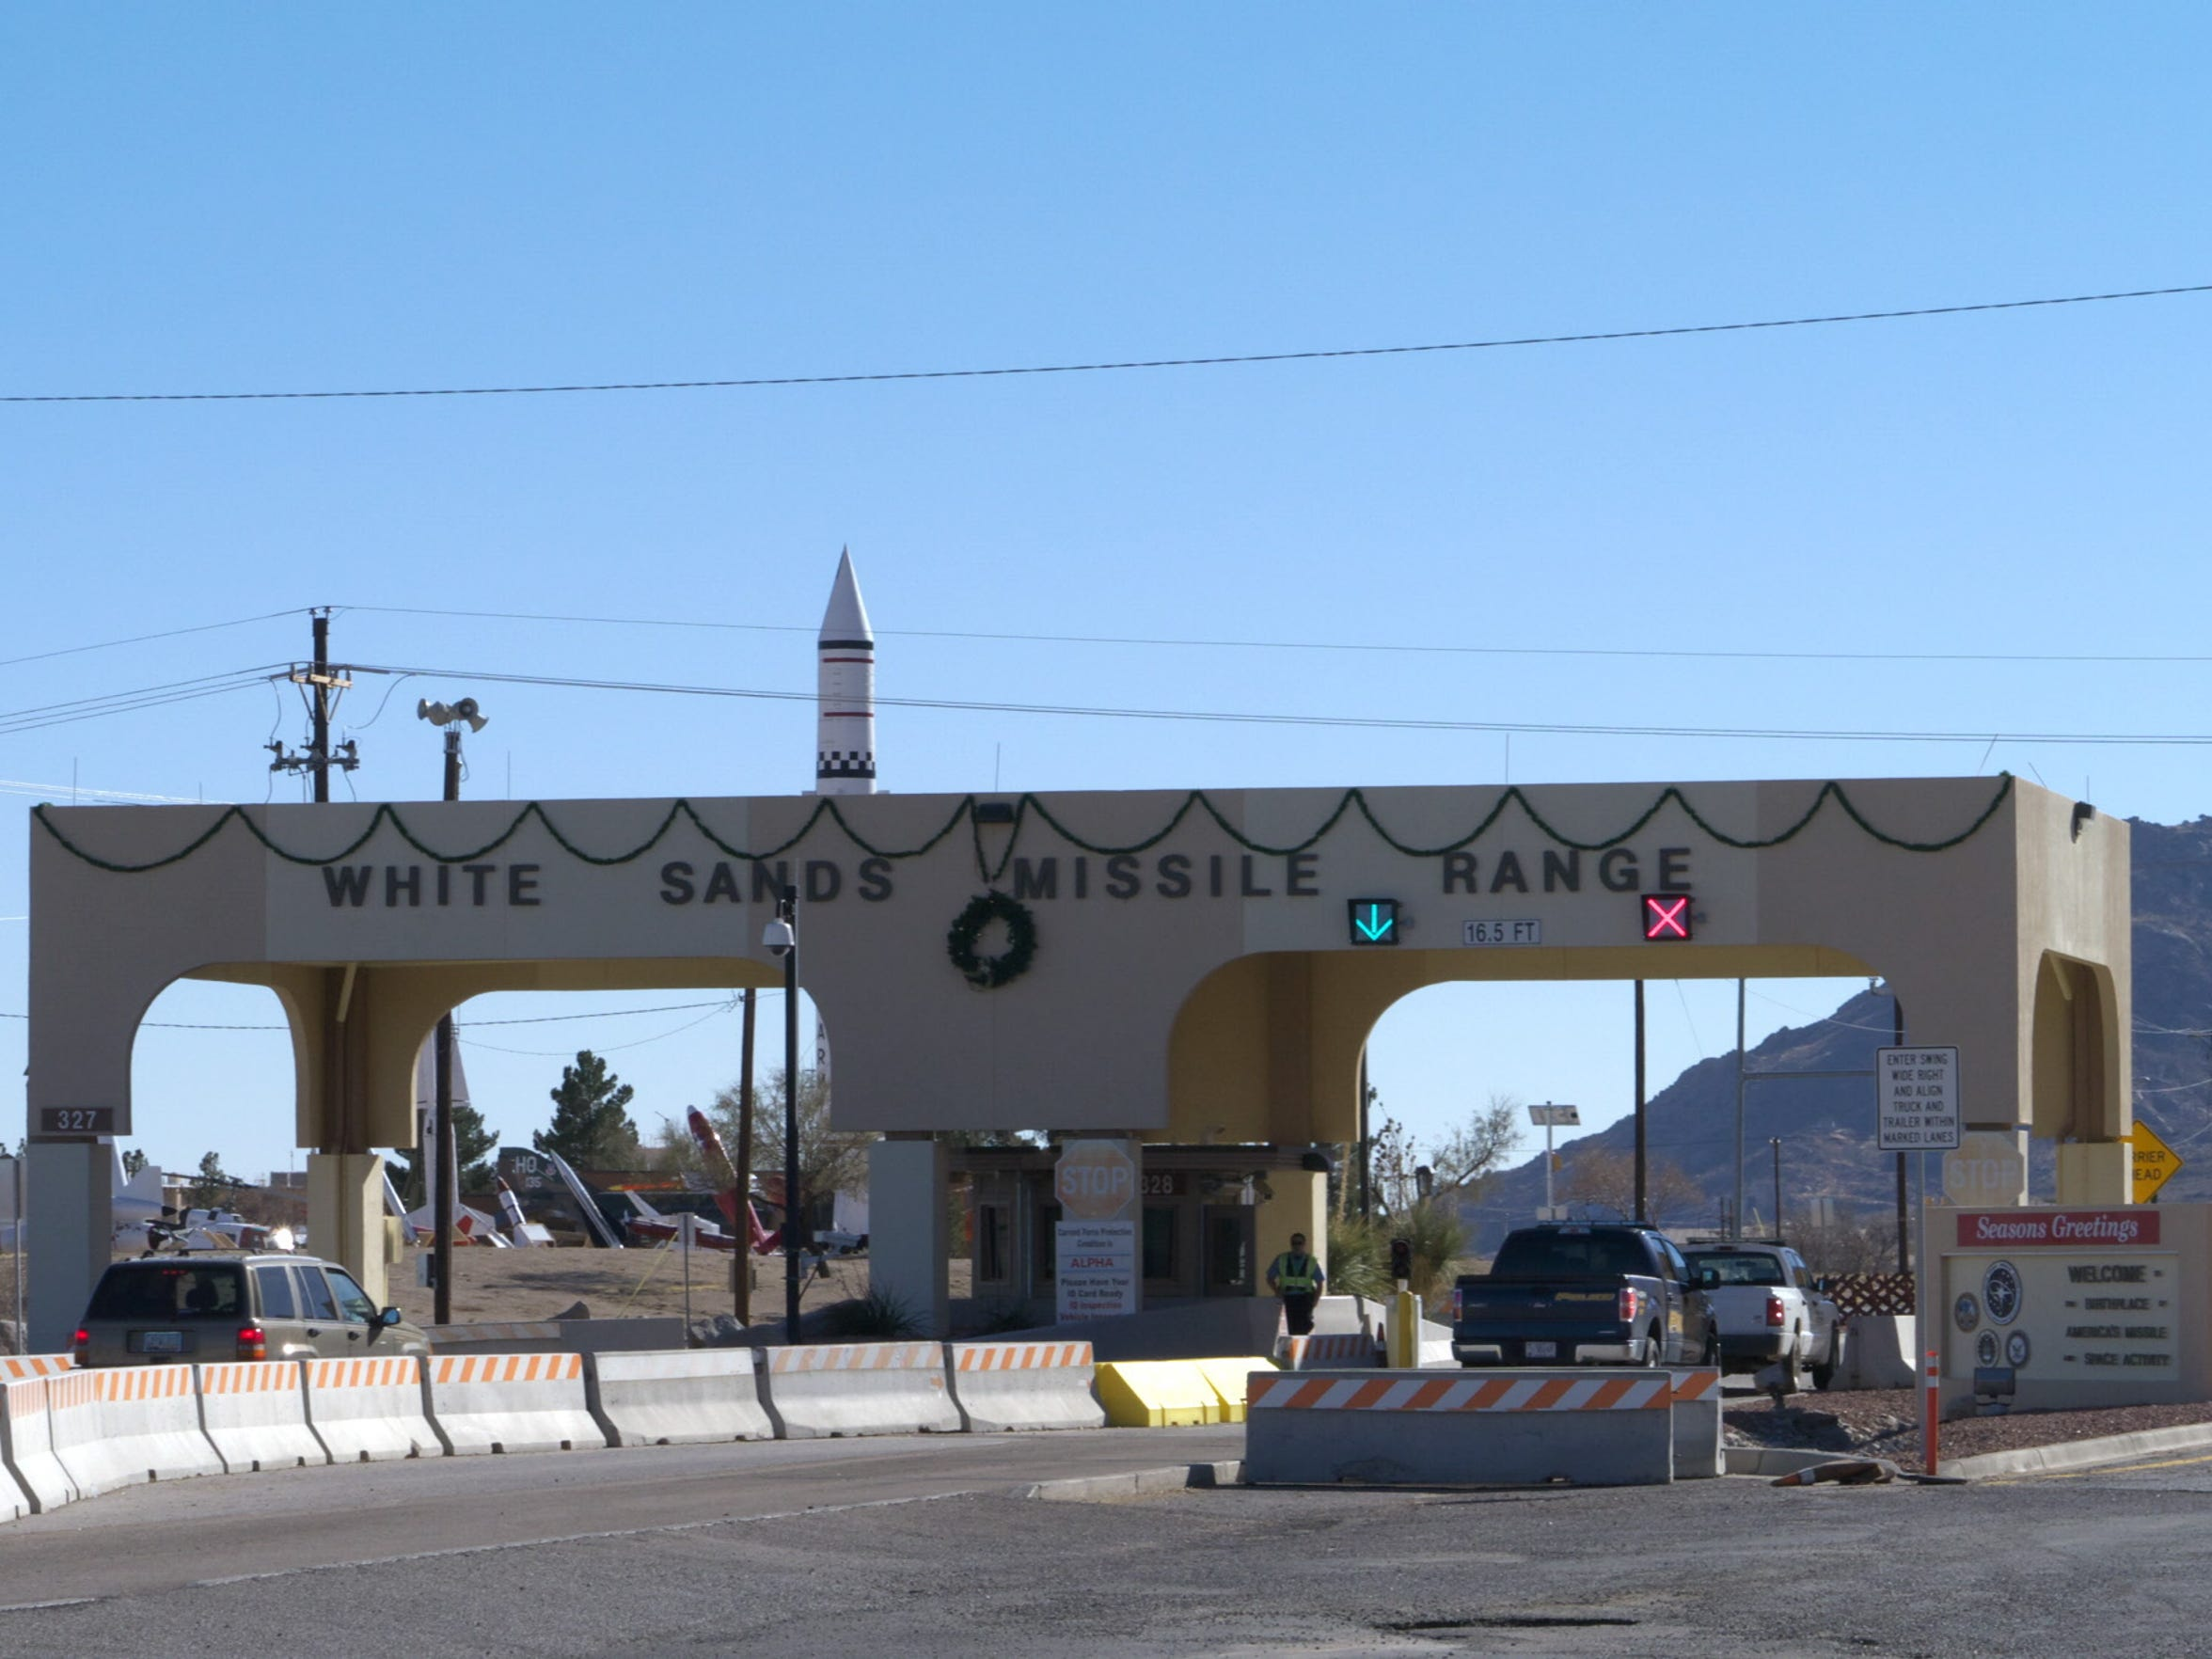 Main gate at White Sands Missile Range, where Frances Williams worked from 1952 until 1987.